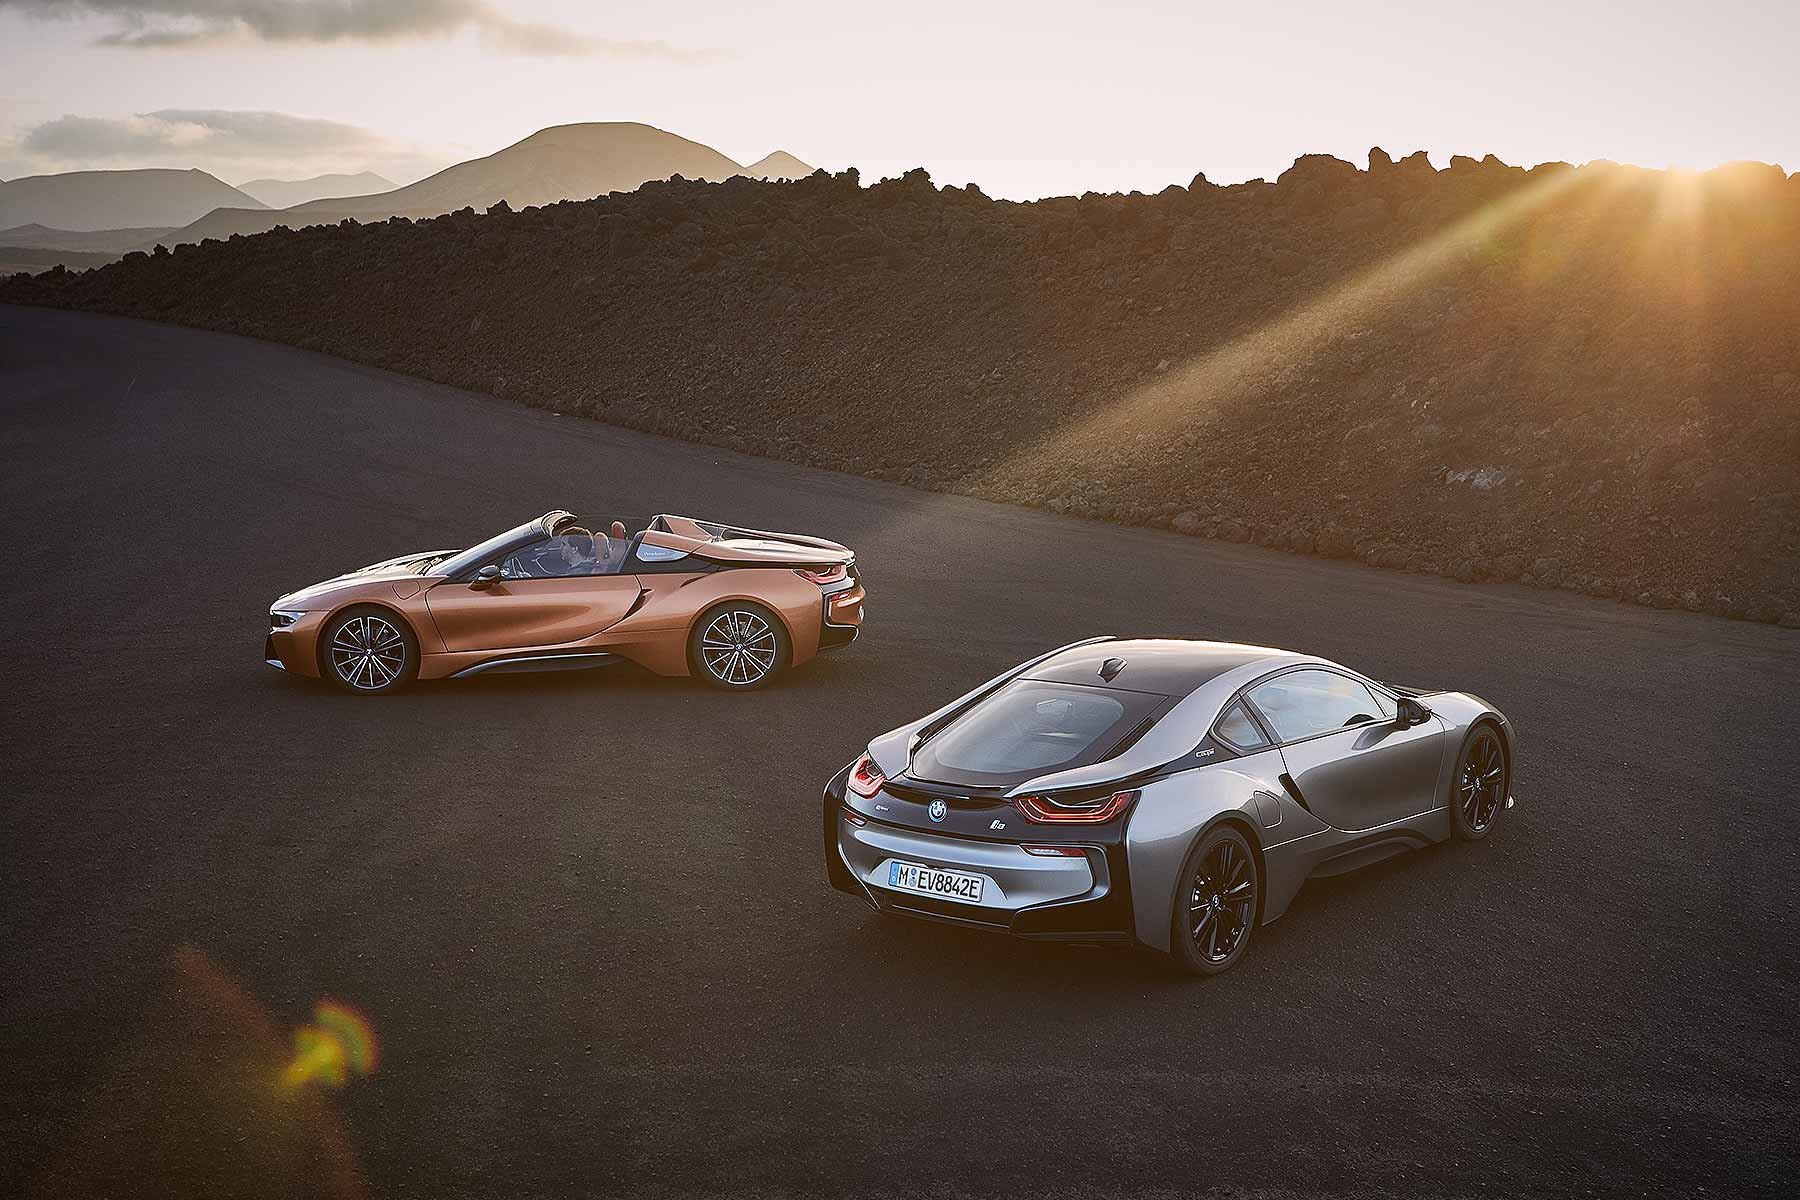 2018 BMW i8 Coupe and i8 Roadster